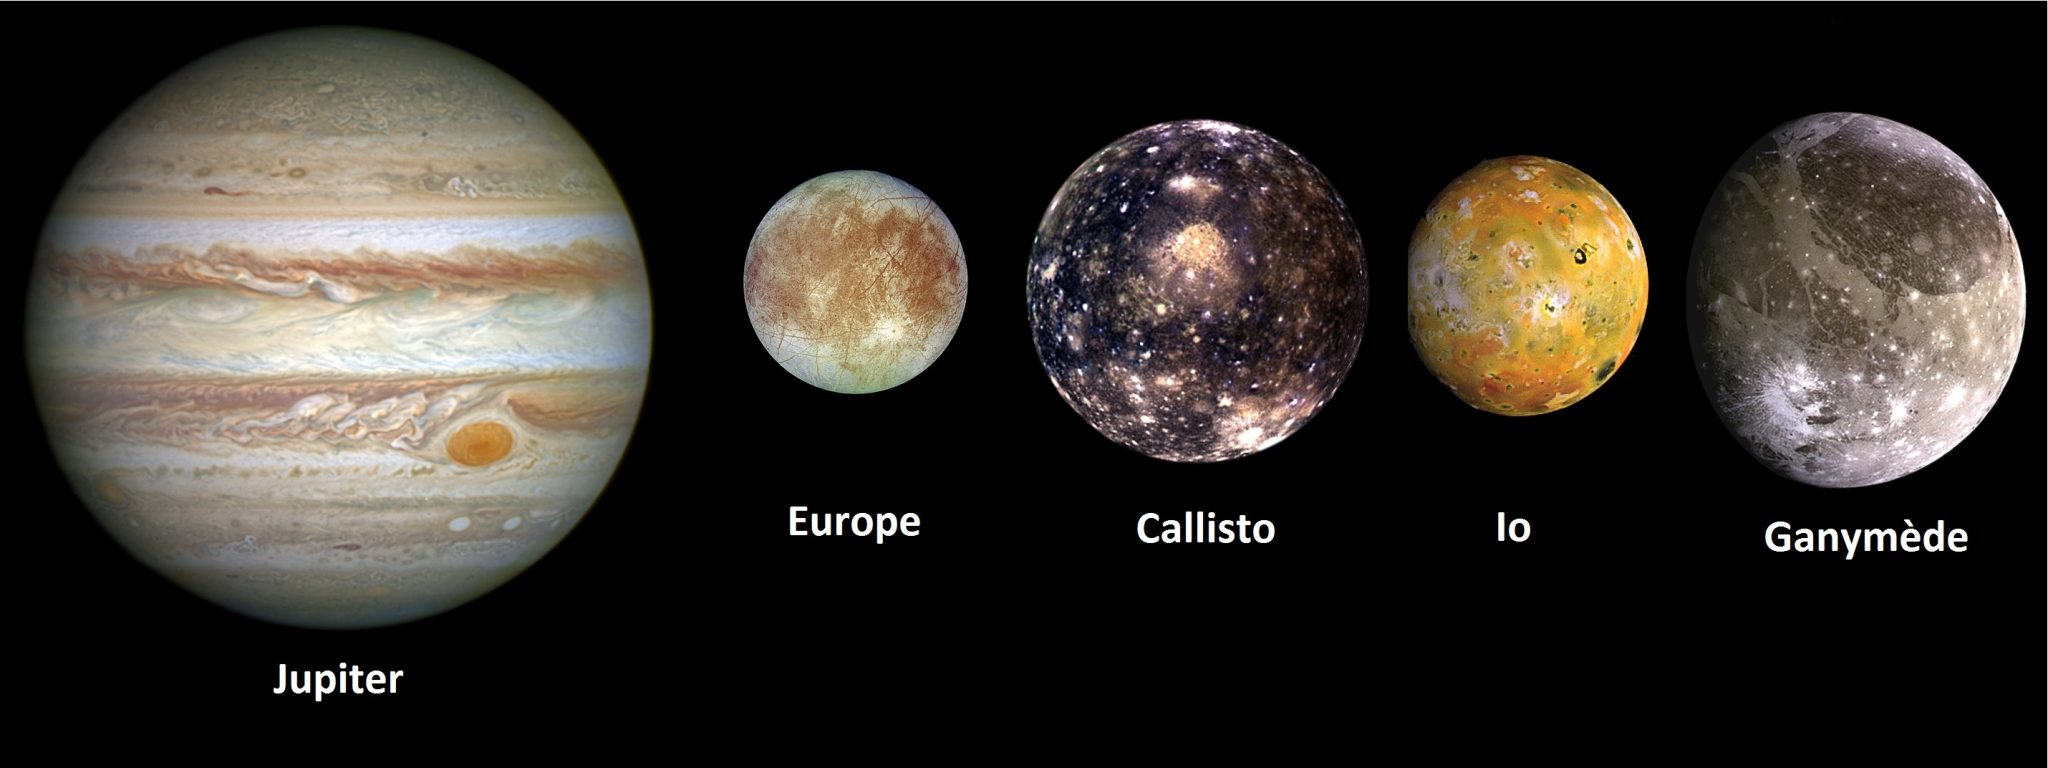 Satellites_Jupiter_Europe_Callisto_Io_Ganymède